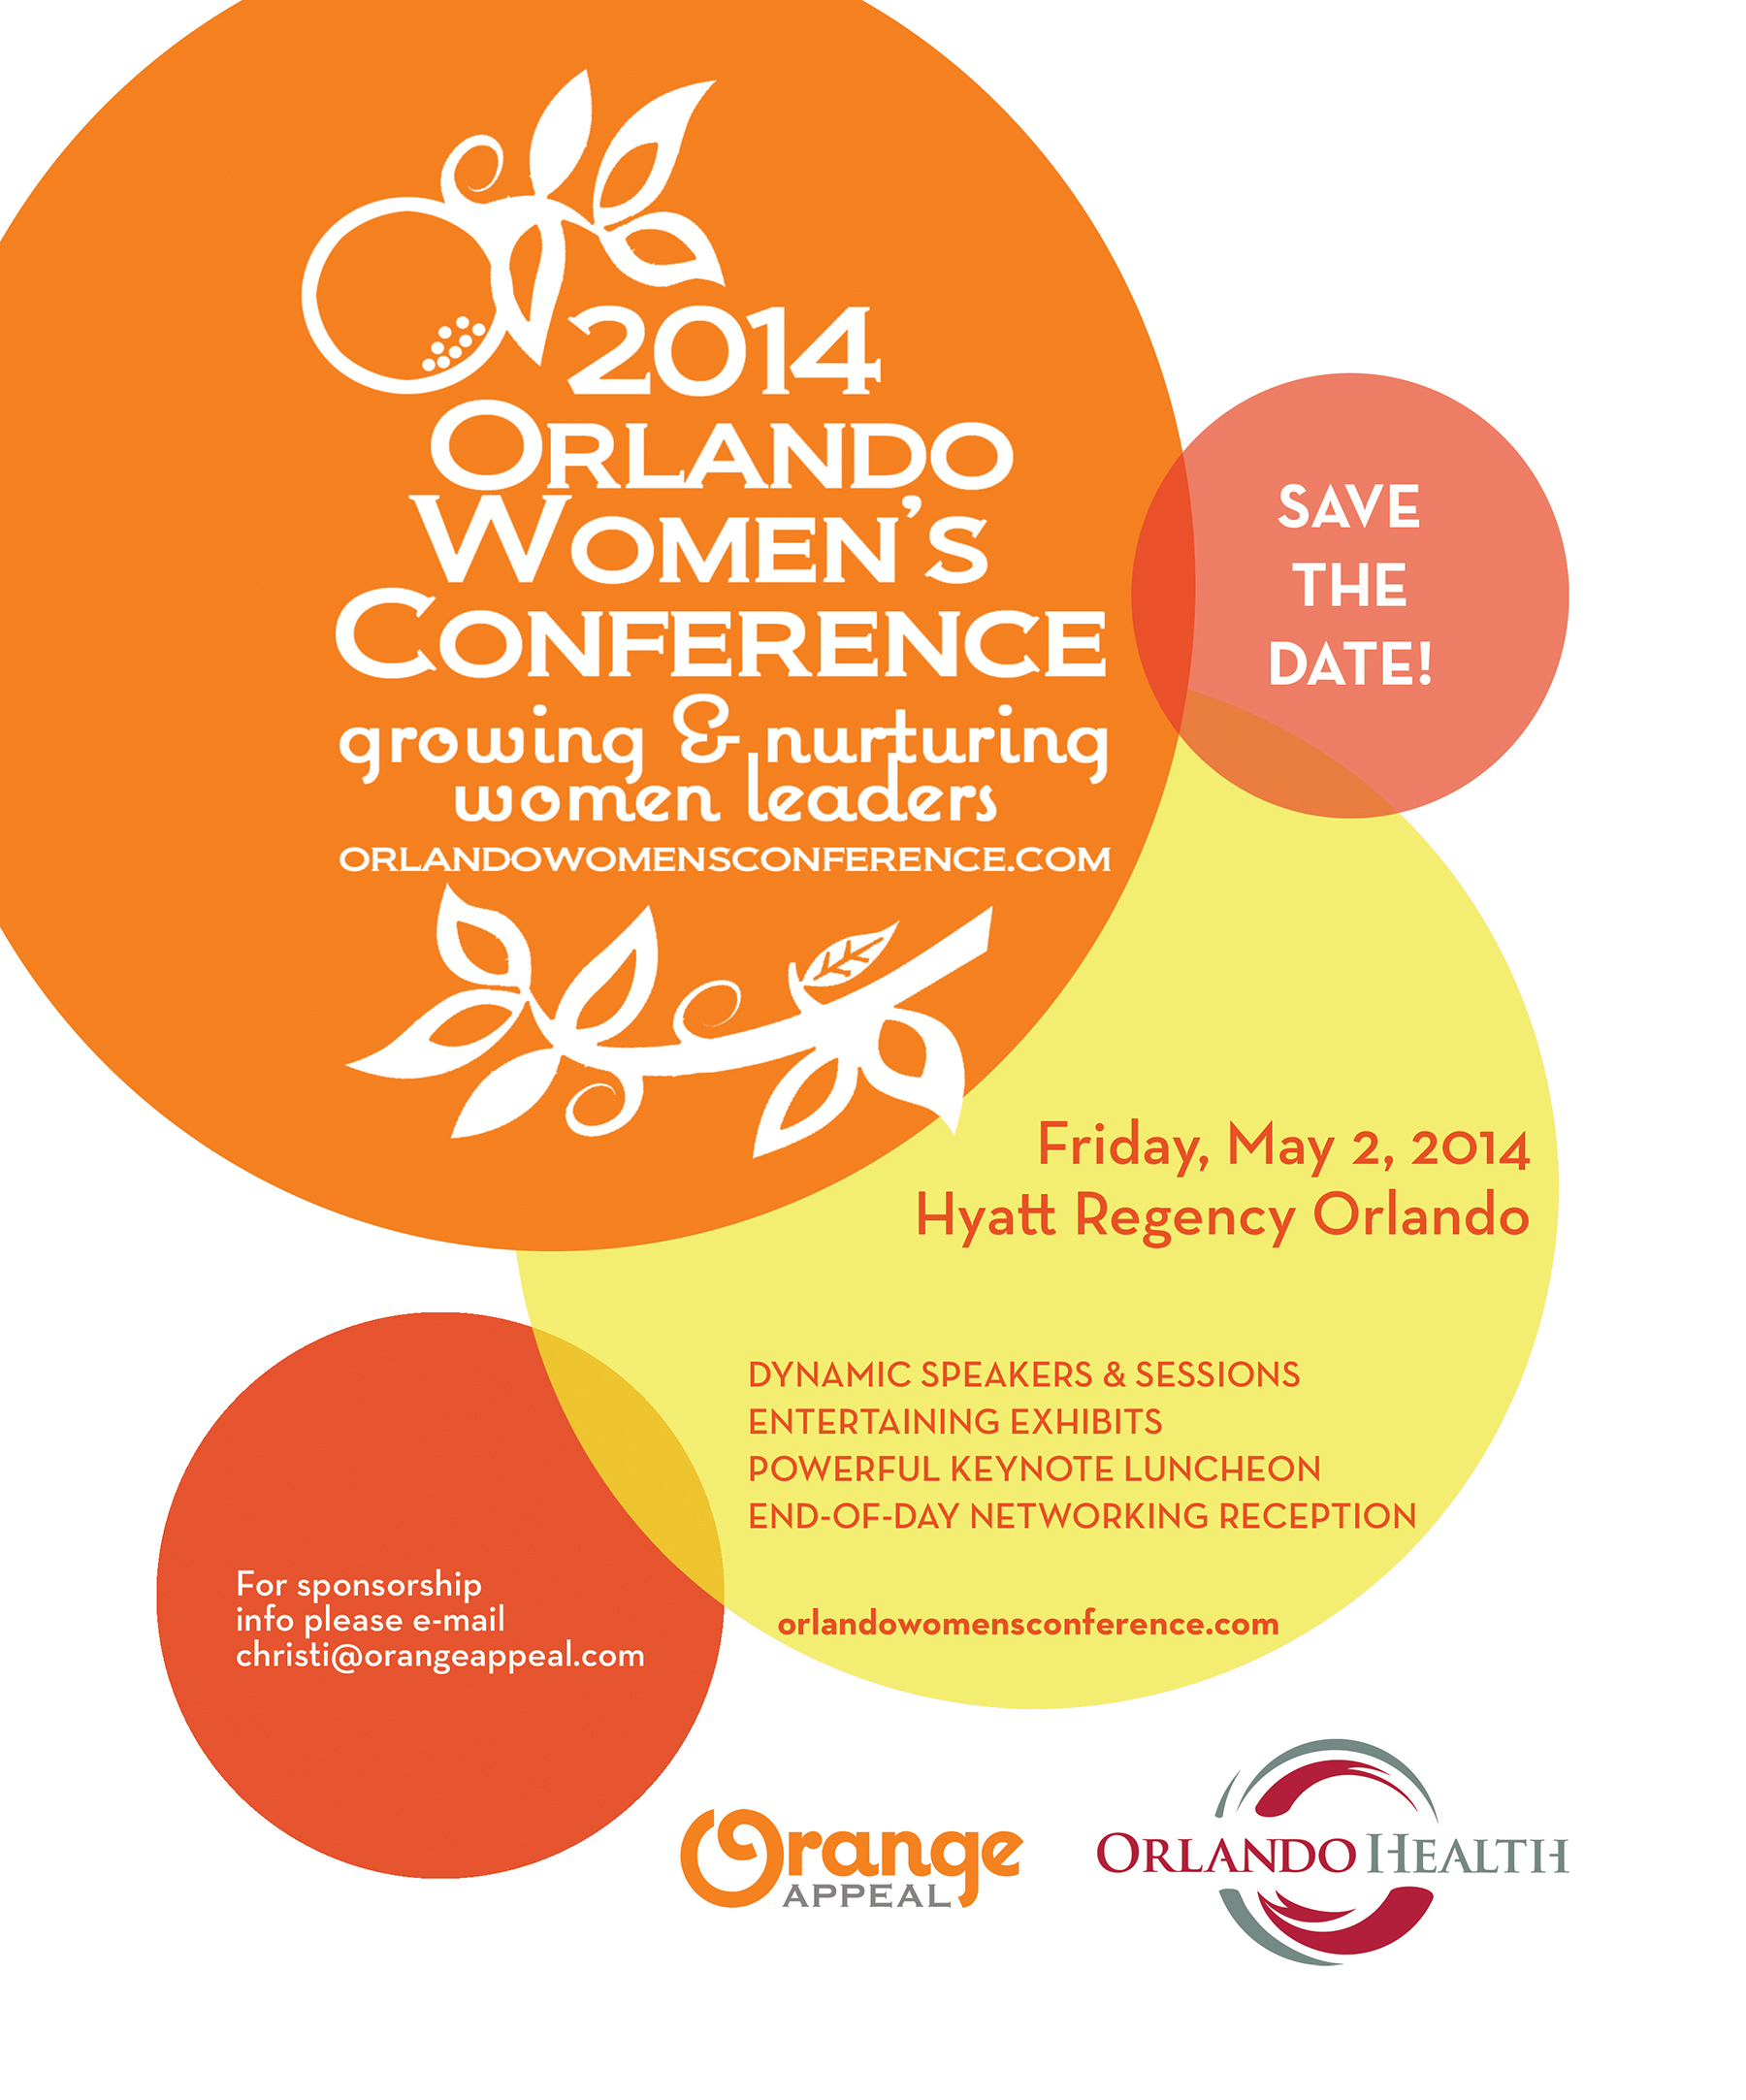 save the date 2014 orlando women s conference friday may 2